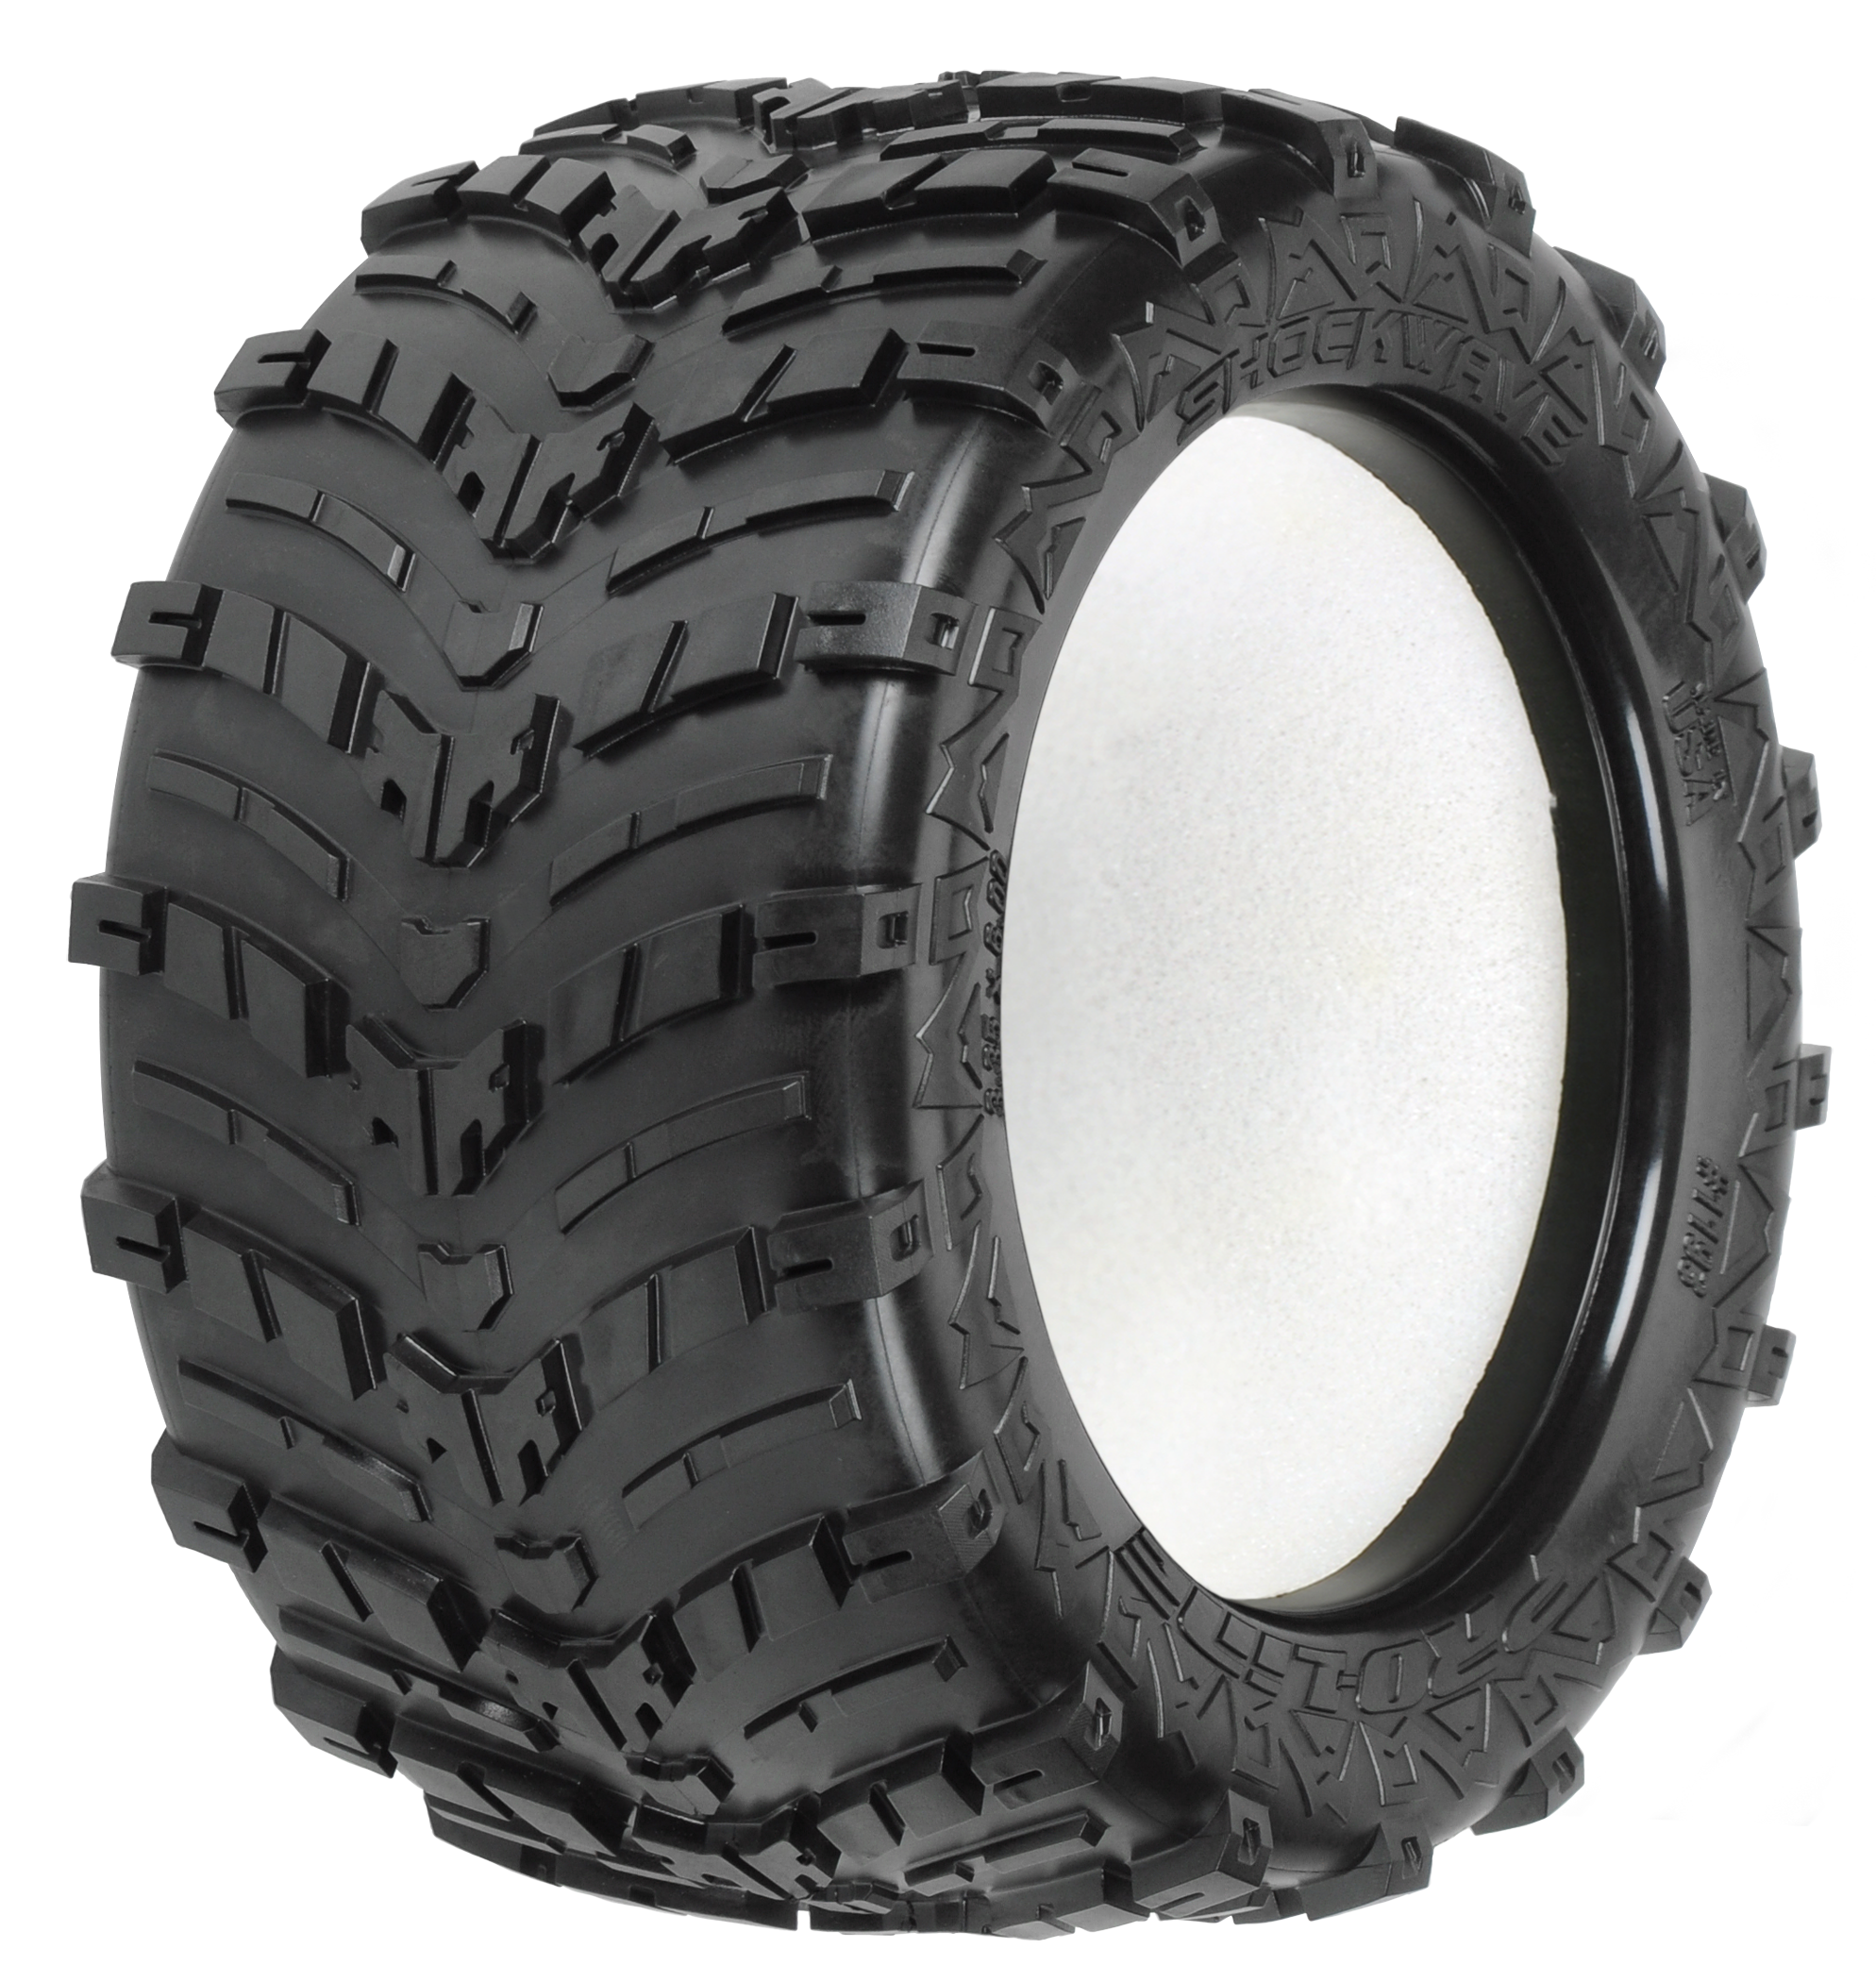 pro line tires monstertruck parent directory 00 tires monstertruck zip